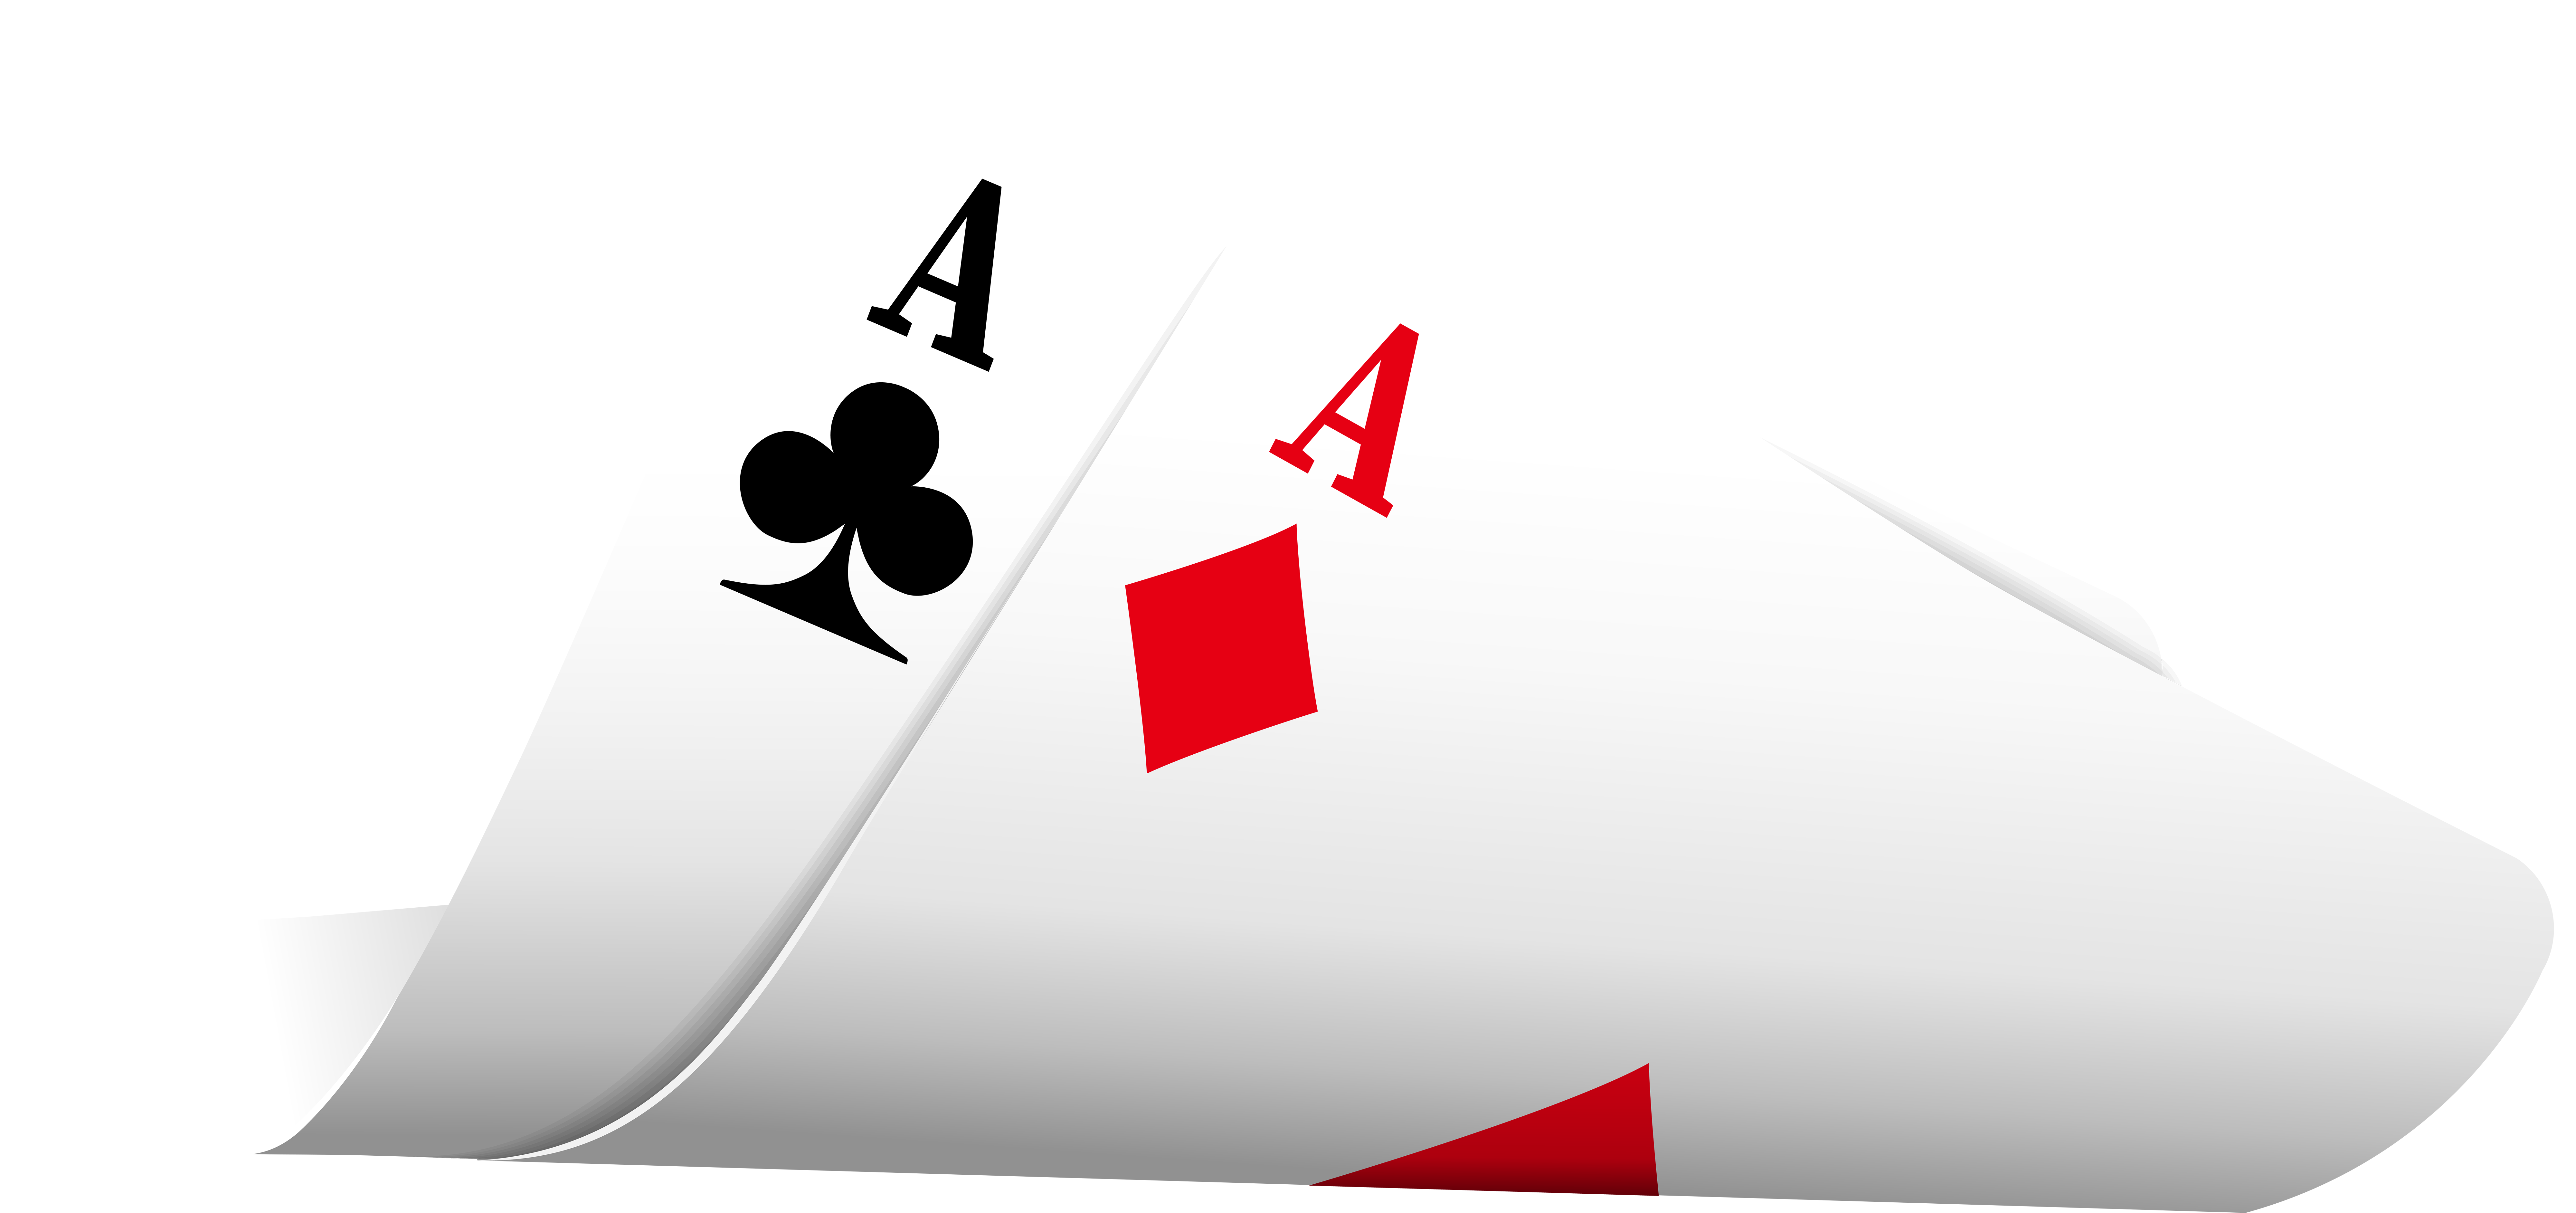 Aces cards png clip. Game clipart card